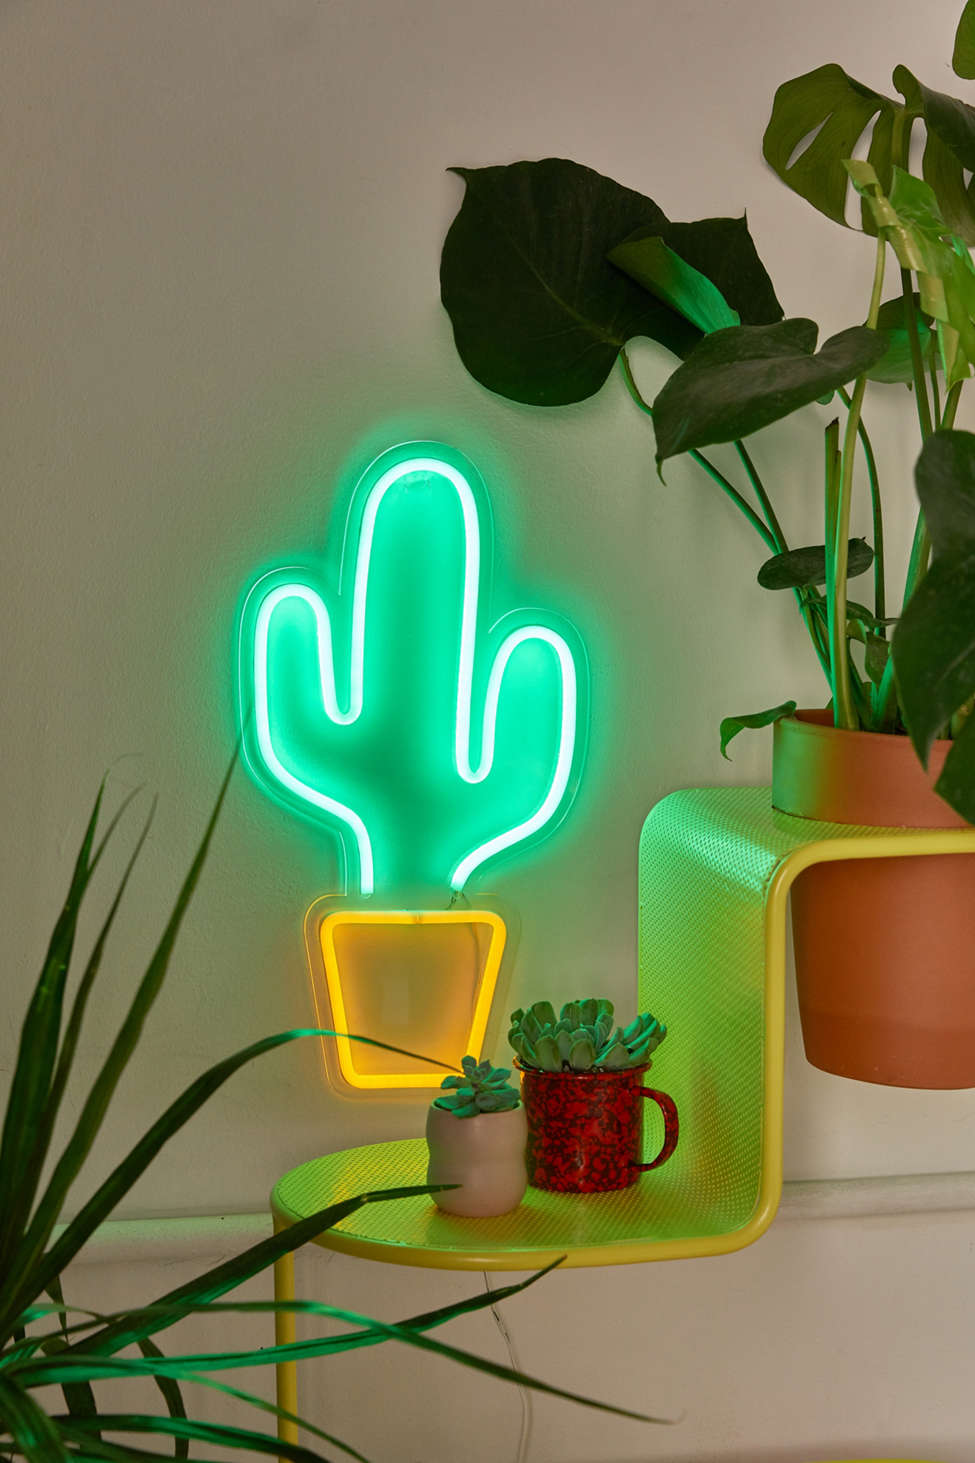 Slide View: 1: Potted Cactus Neon Sign